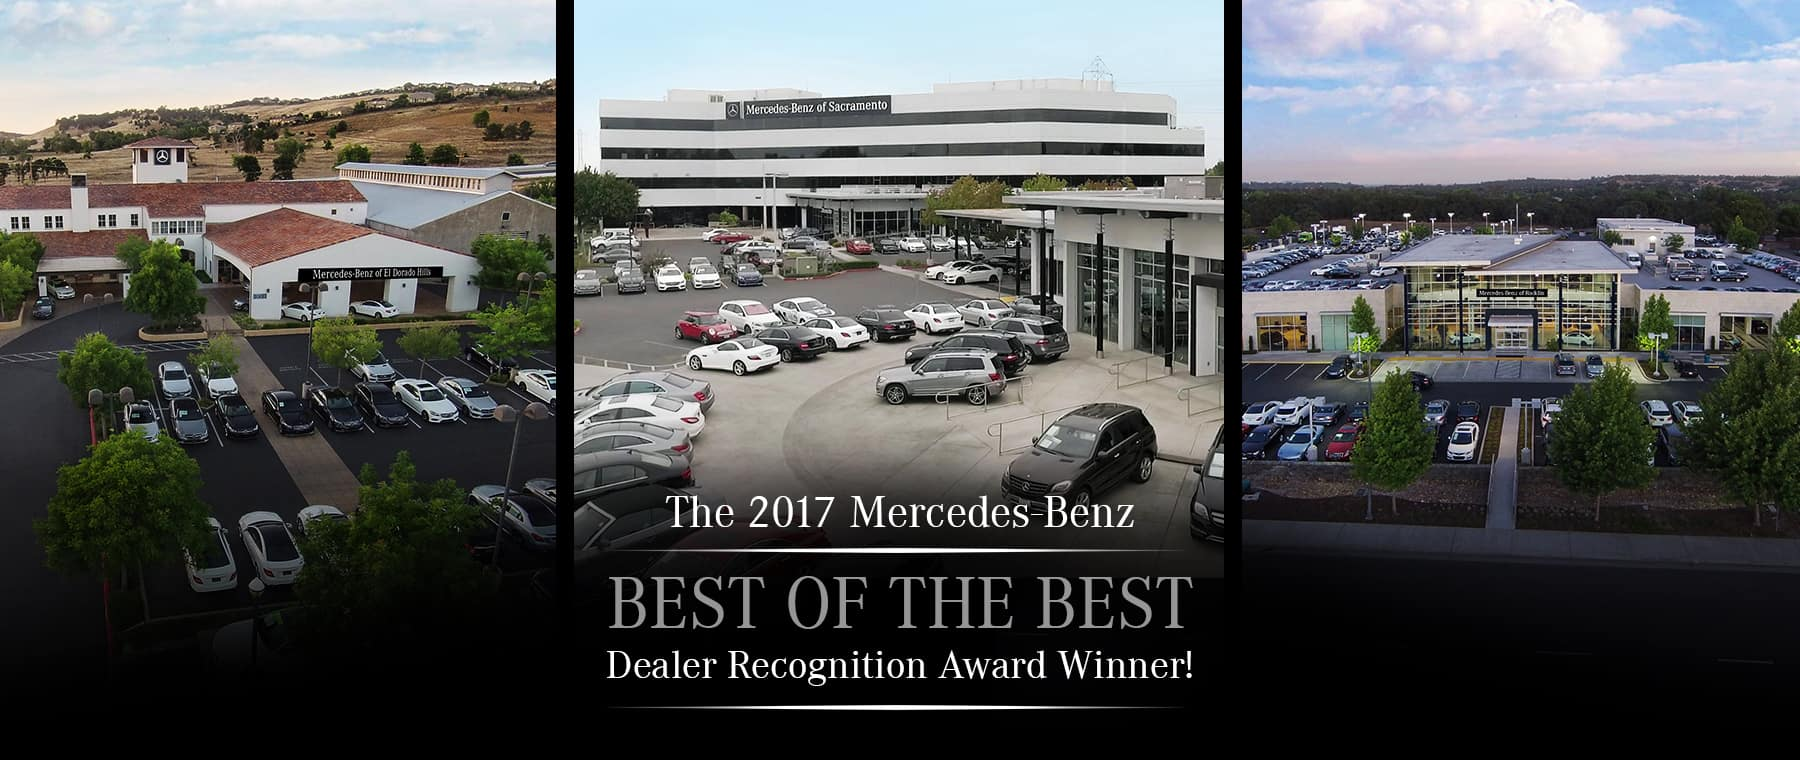 Sacramento department of motor vehicles phone number for Mercedes benz dealership sacramento ca